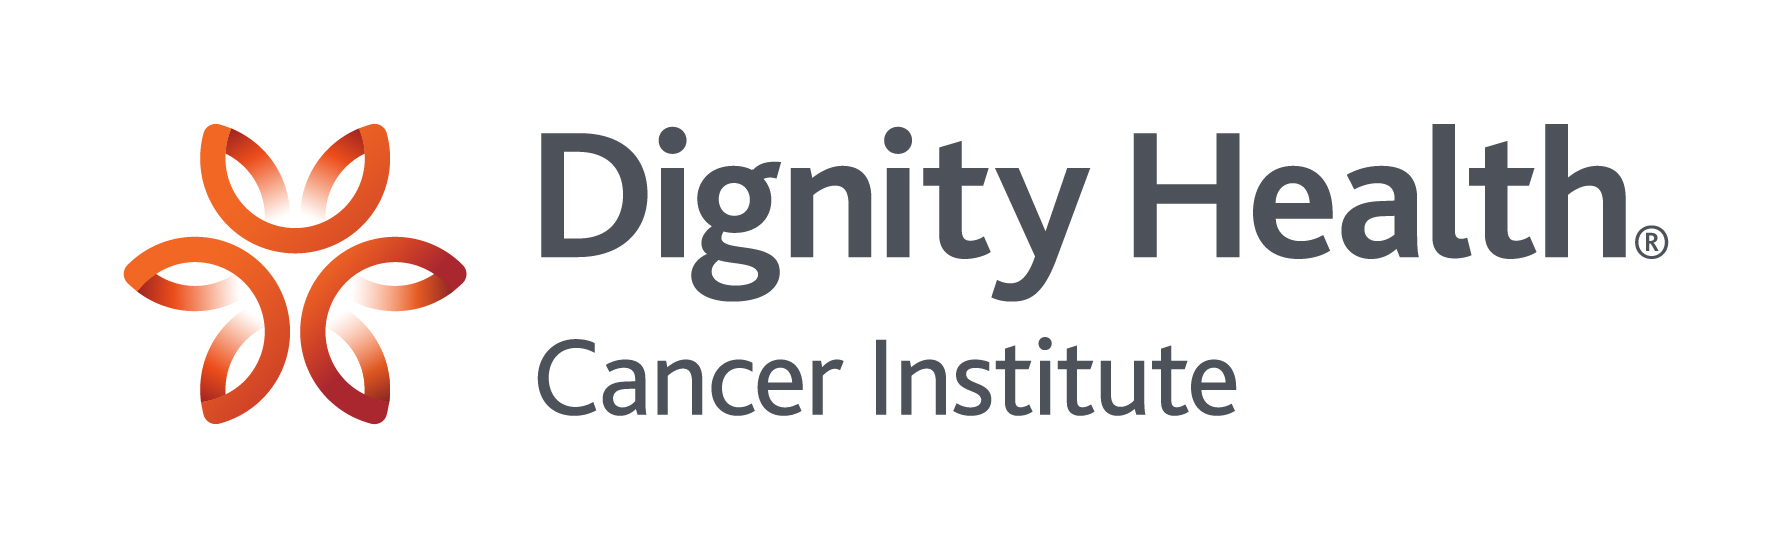 Section Leader, Soft Tissue Multidisciplinary Oncology - Phoenix, AZ - Dignity Health - Cancer Institute at St. Joseph's Hospital and Medical Center